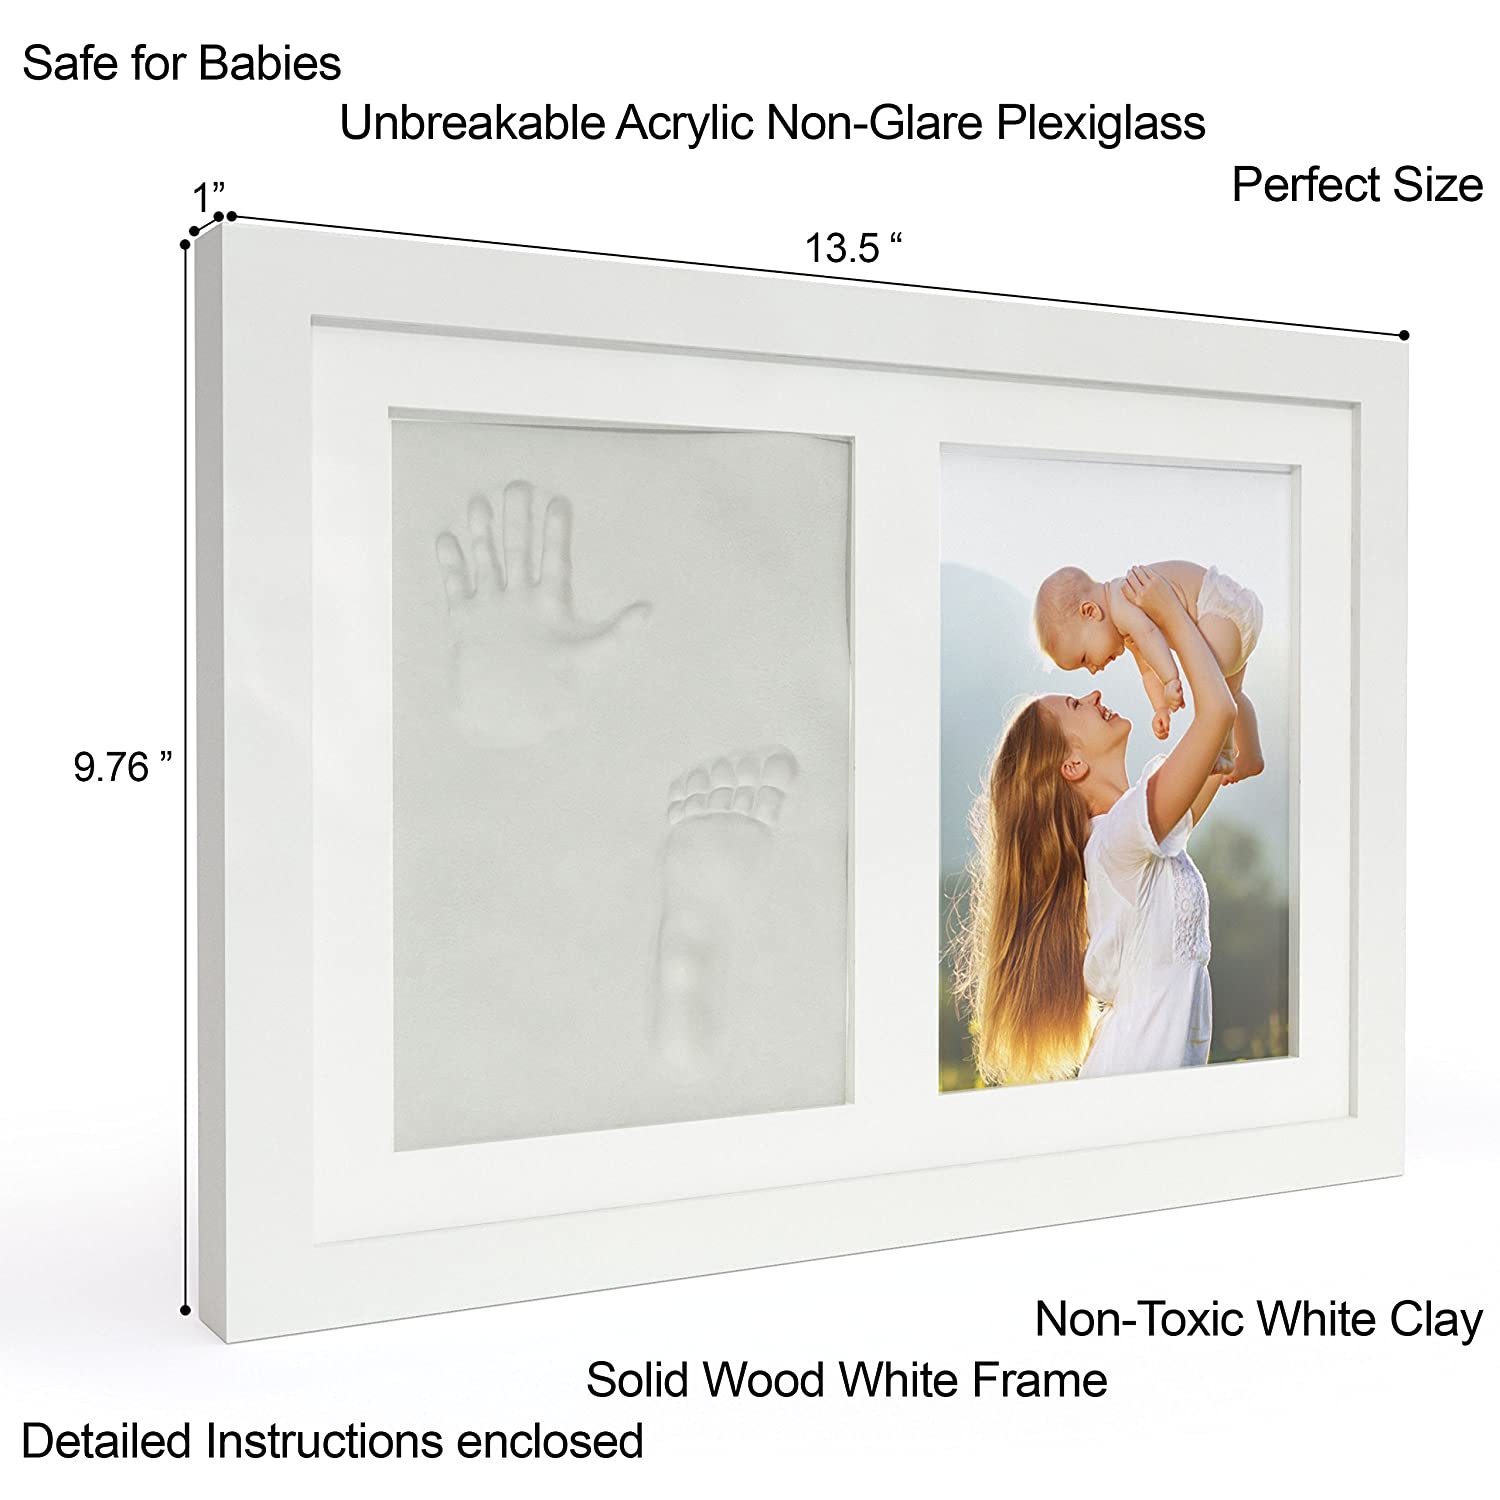 Amazon newborn baby handprint and footprint keepsake photo amazon newborn baby handprint and footprint keepsake photo frame kit girl boy and white photo mats all included perfect for baby shower gifts jeuxipadfo Gallery